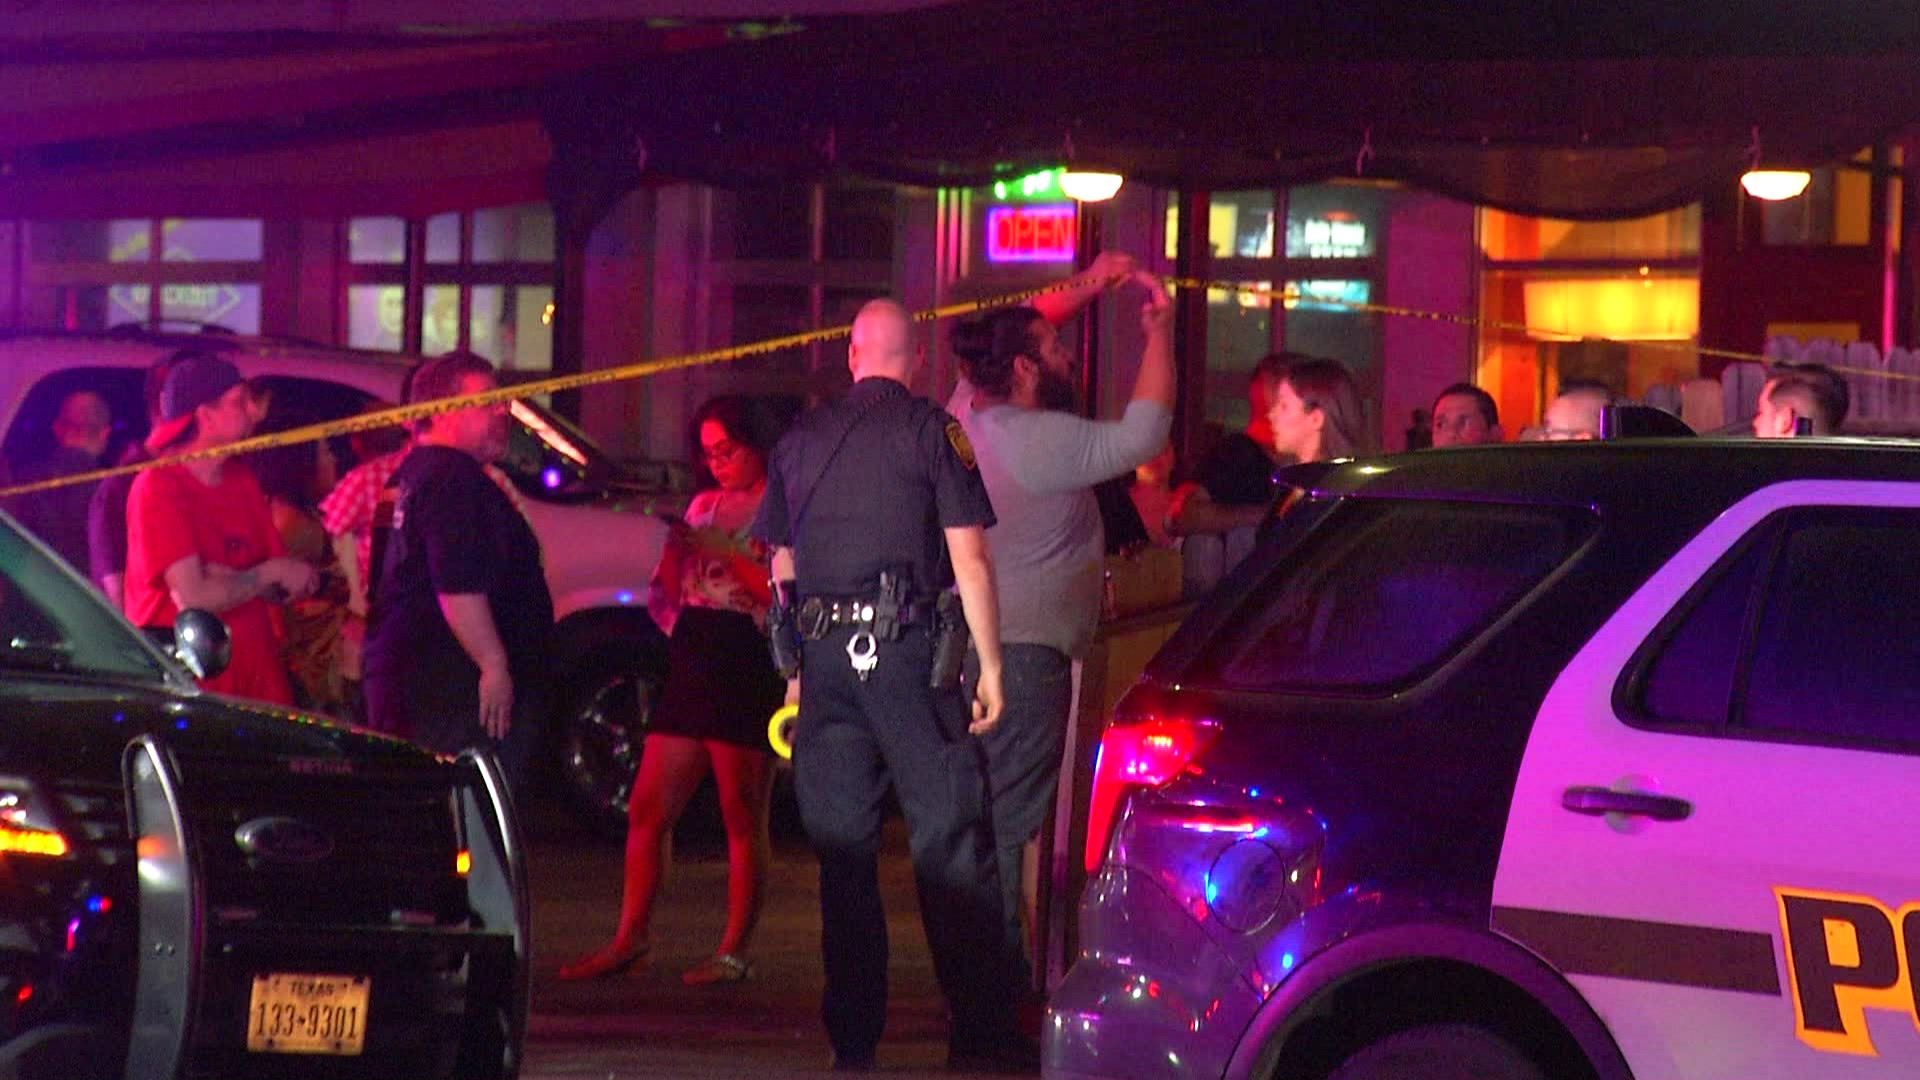 Police: Man who shot 3 on San Antonio's gay strip had been kicked out of bar